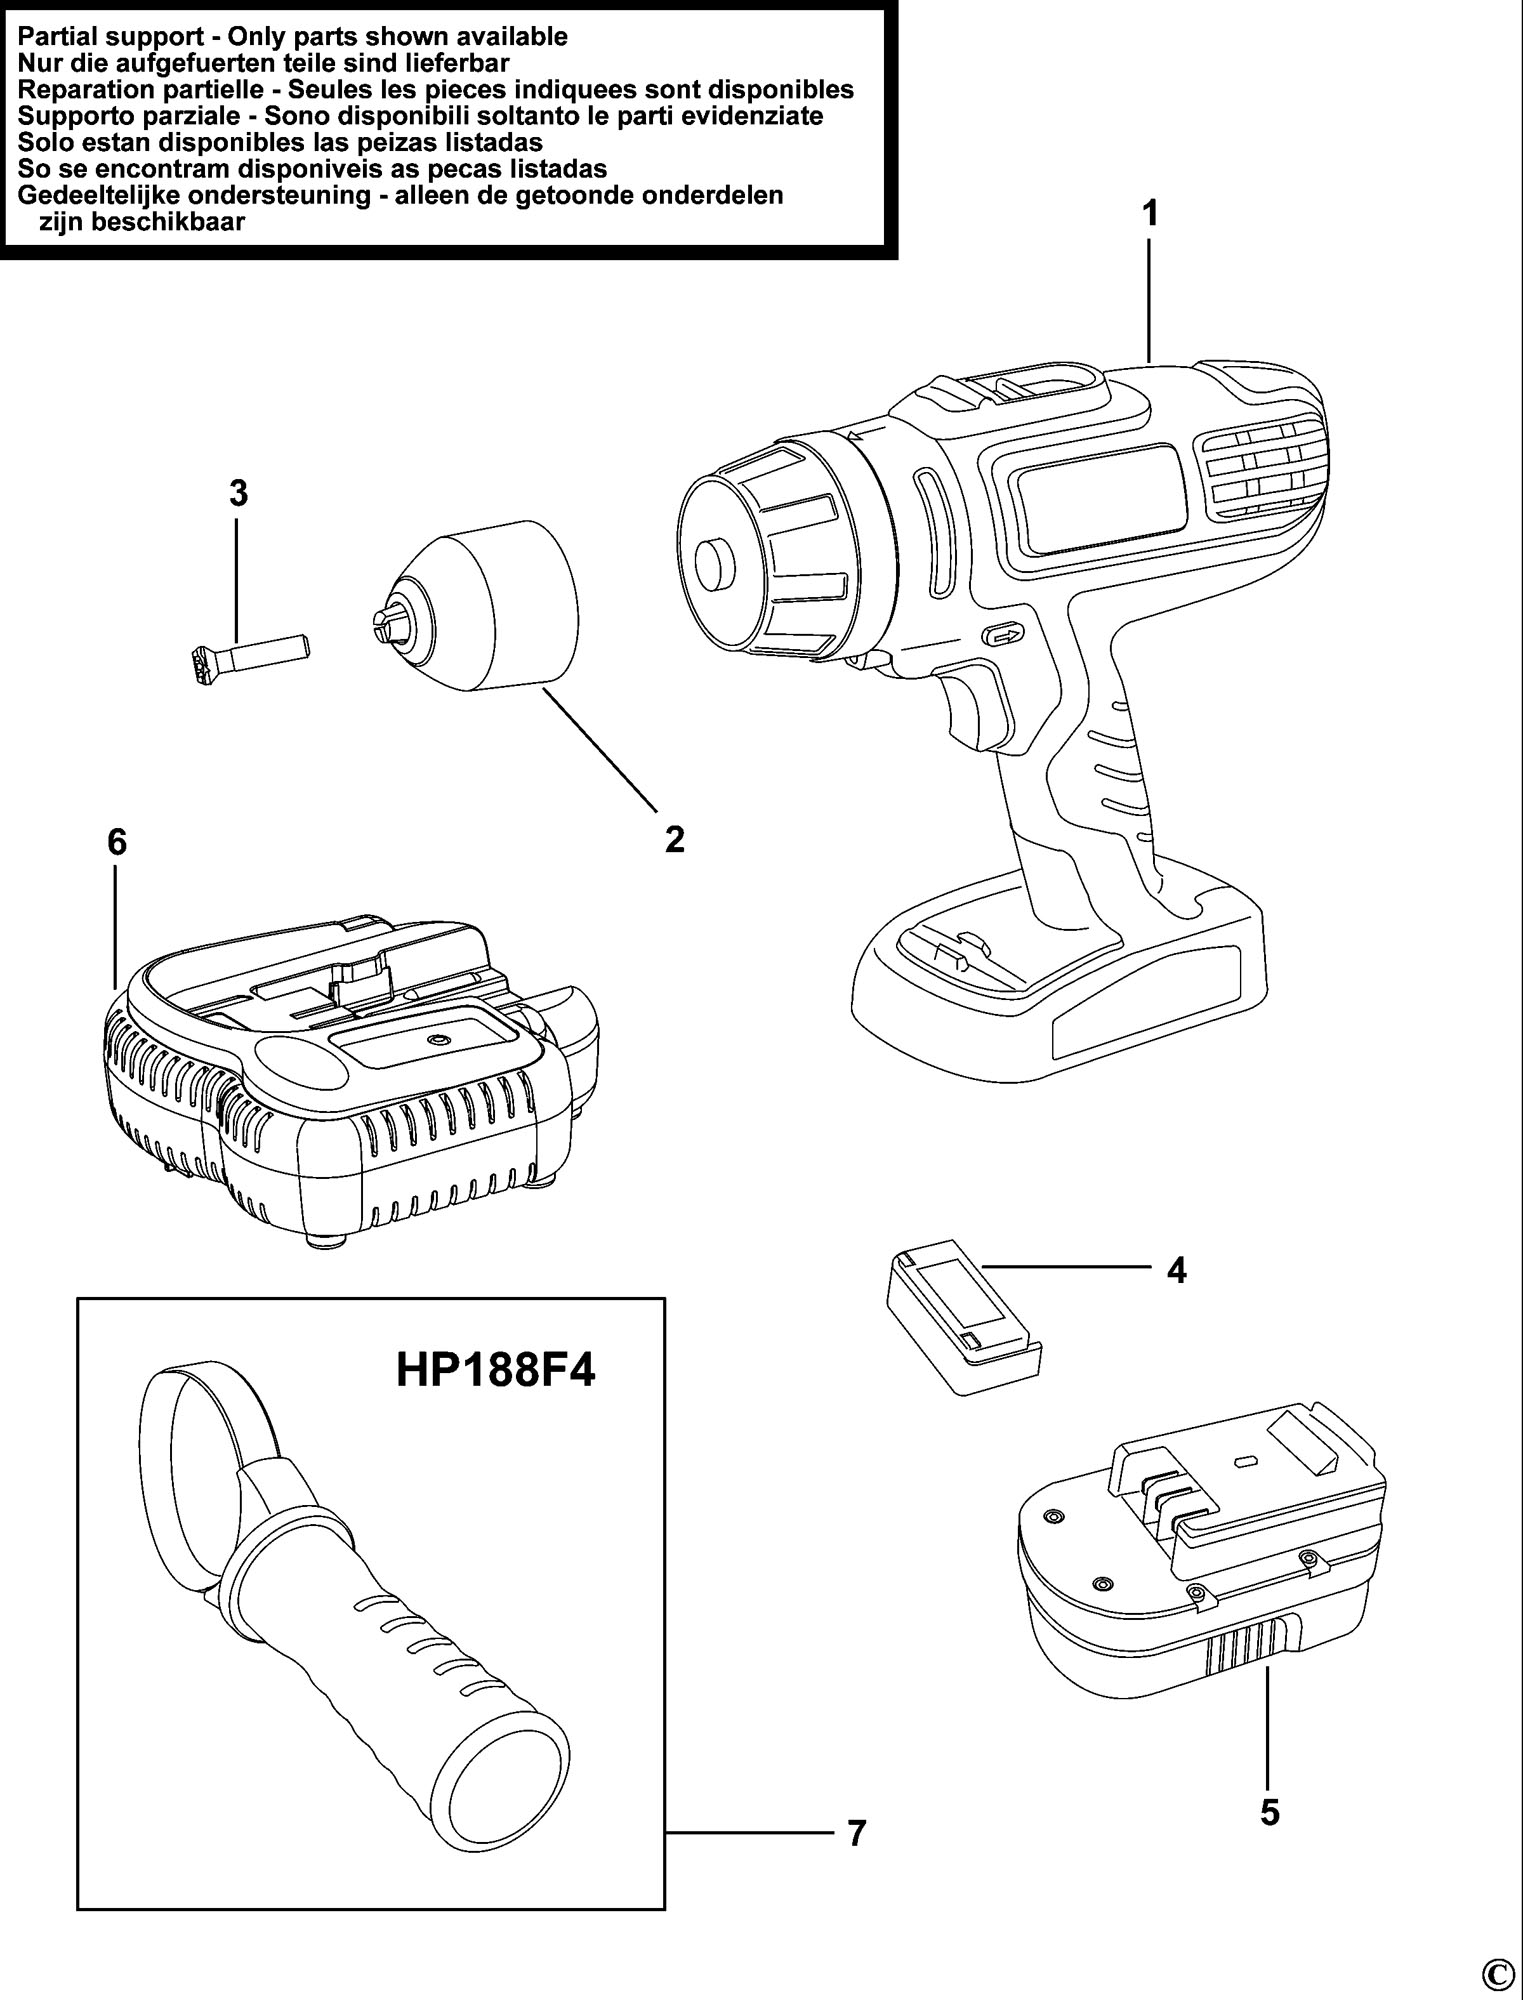 Spares for black decker hp188f4bk cordless drill type h1